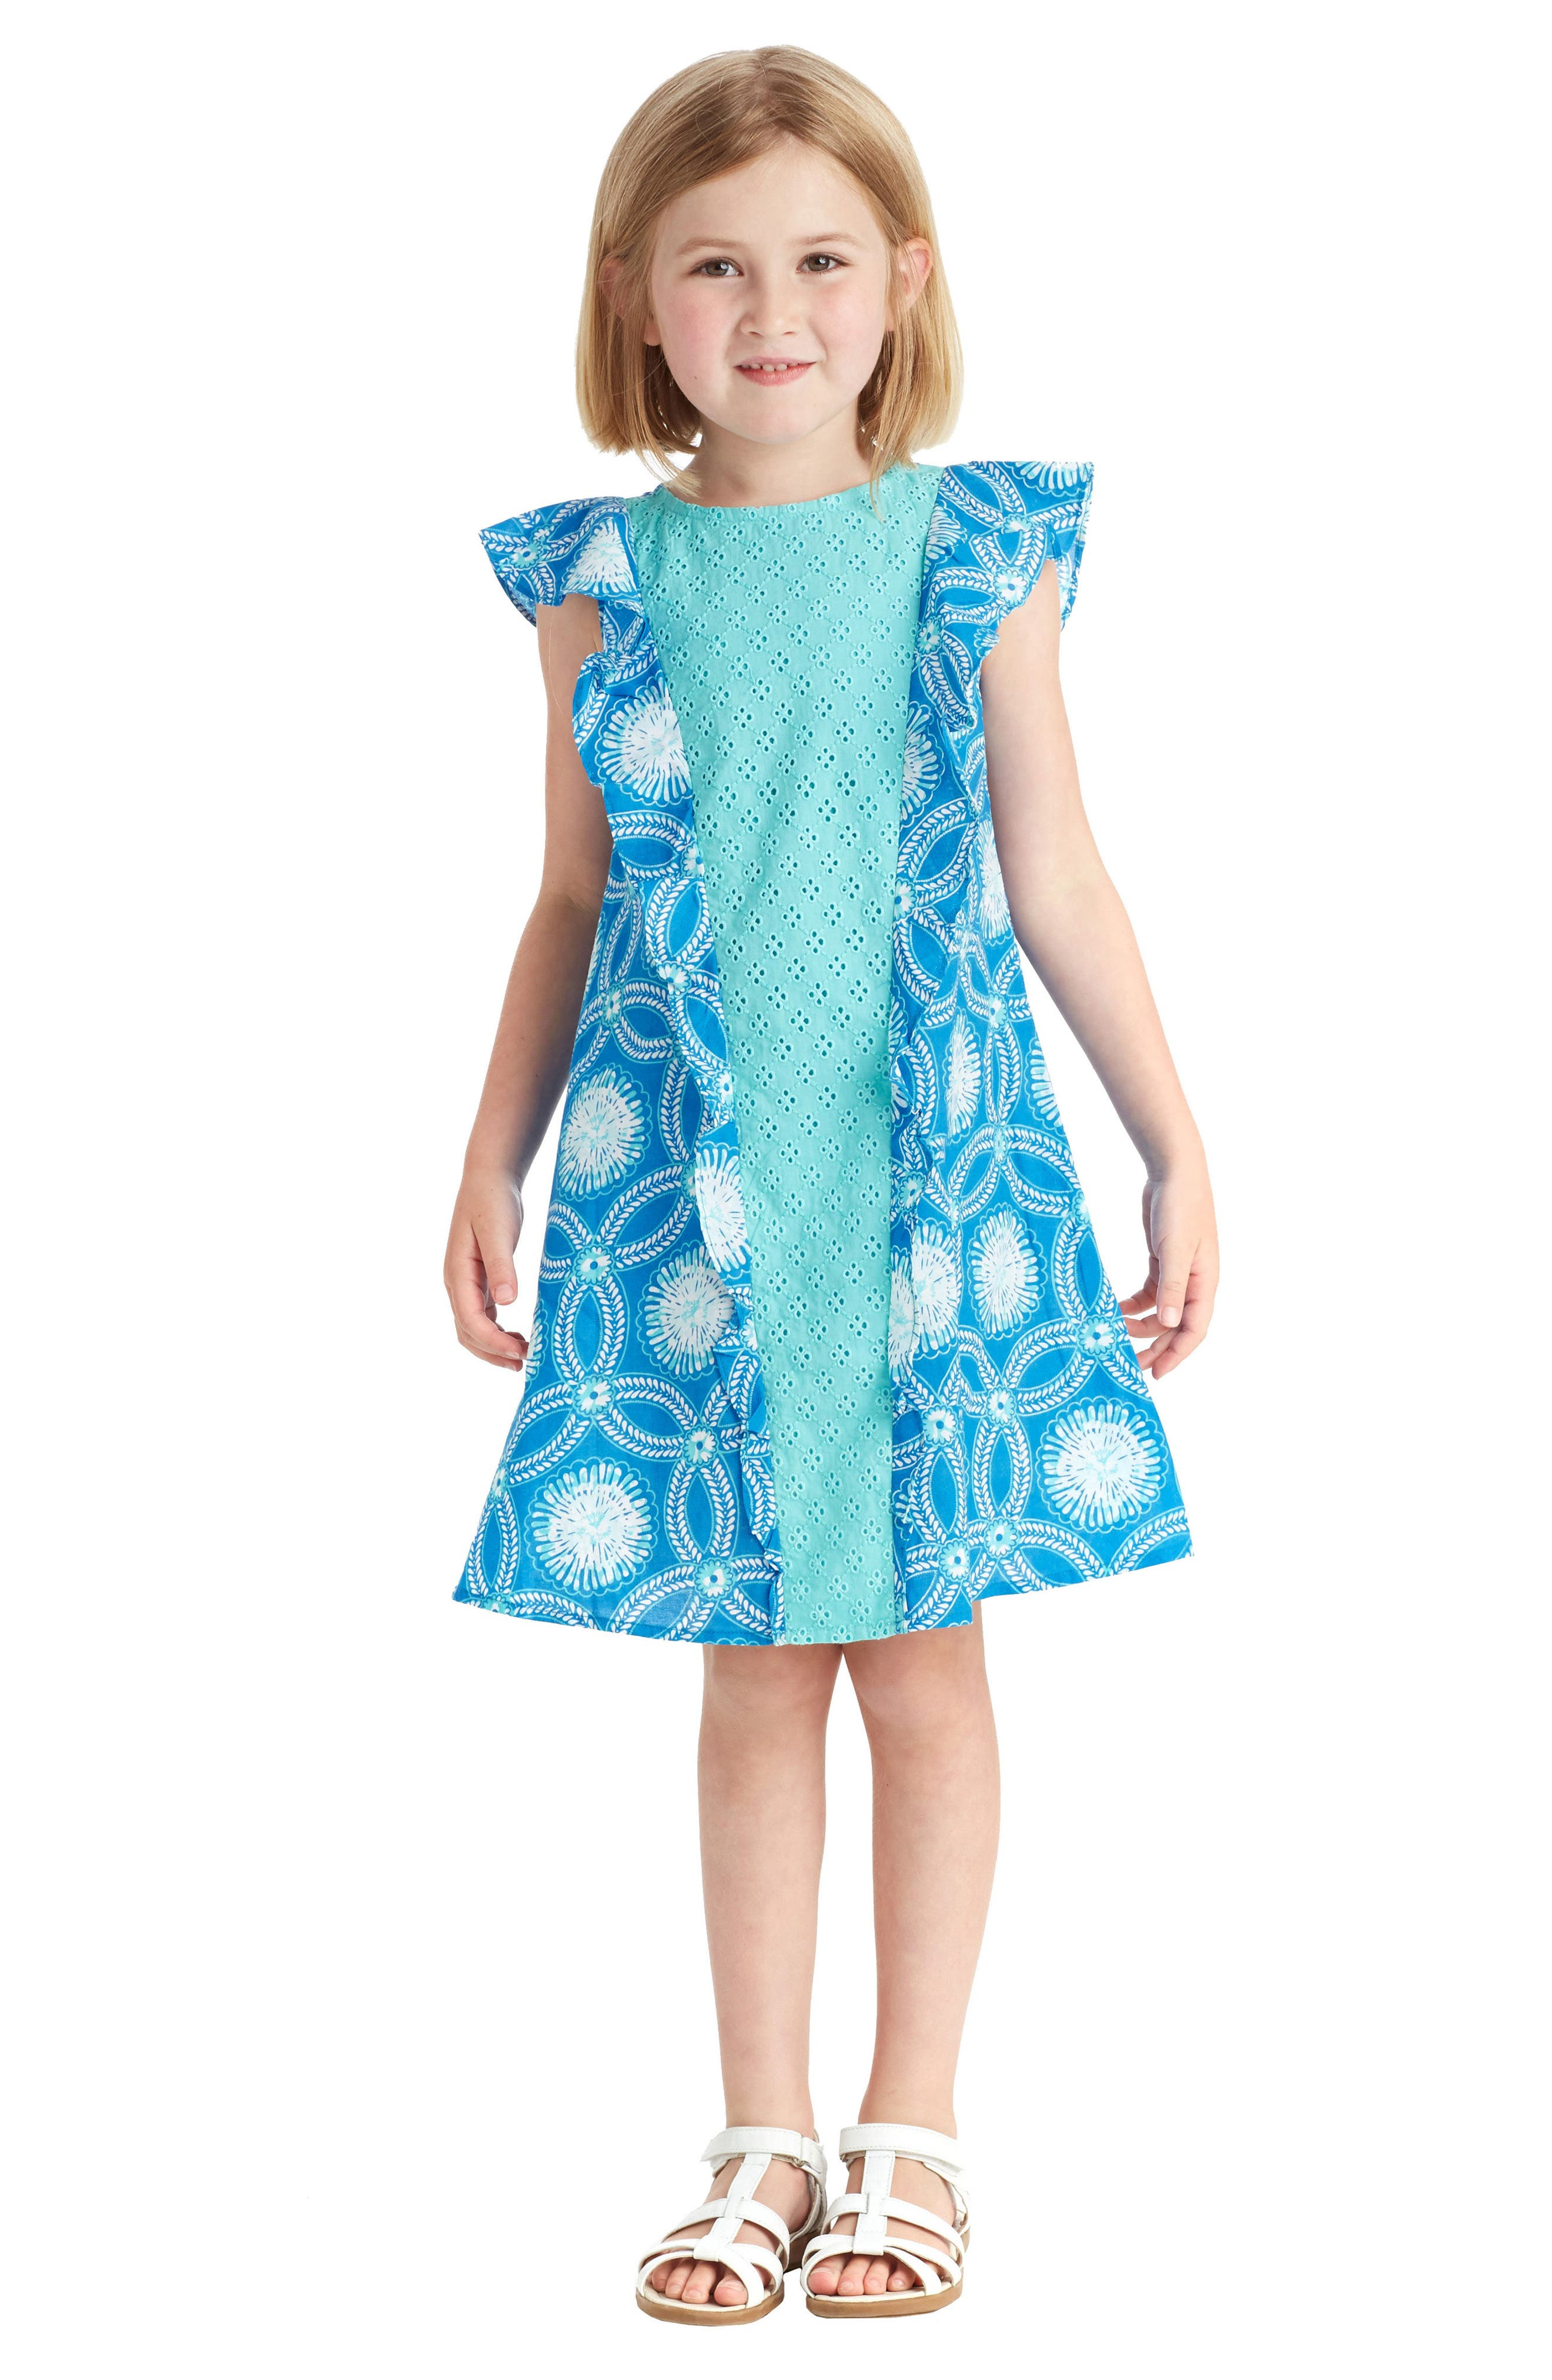 Bali Ruffle Dress,                             Alternate thumbnail 2, color,                             424